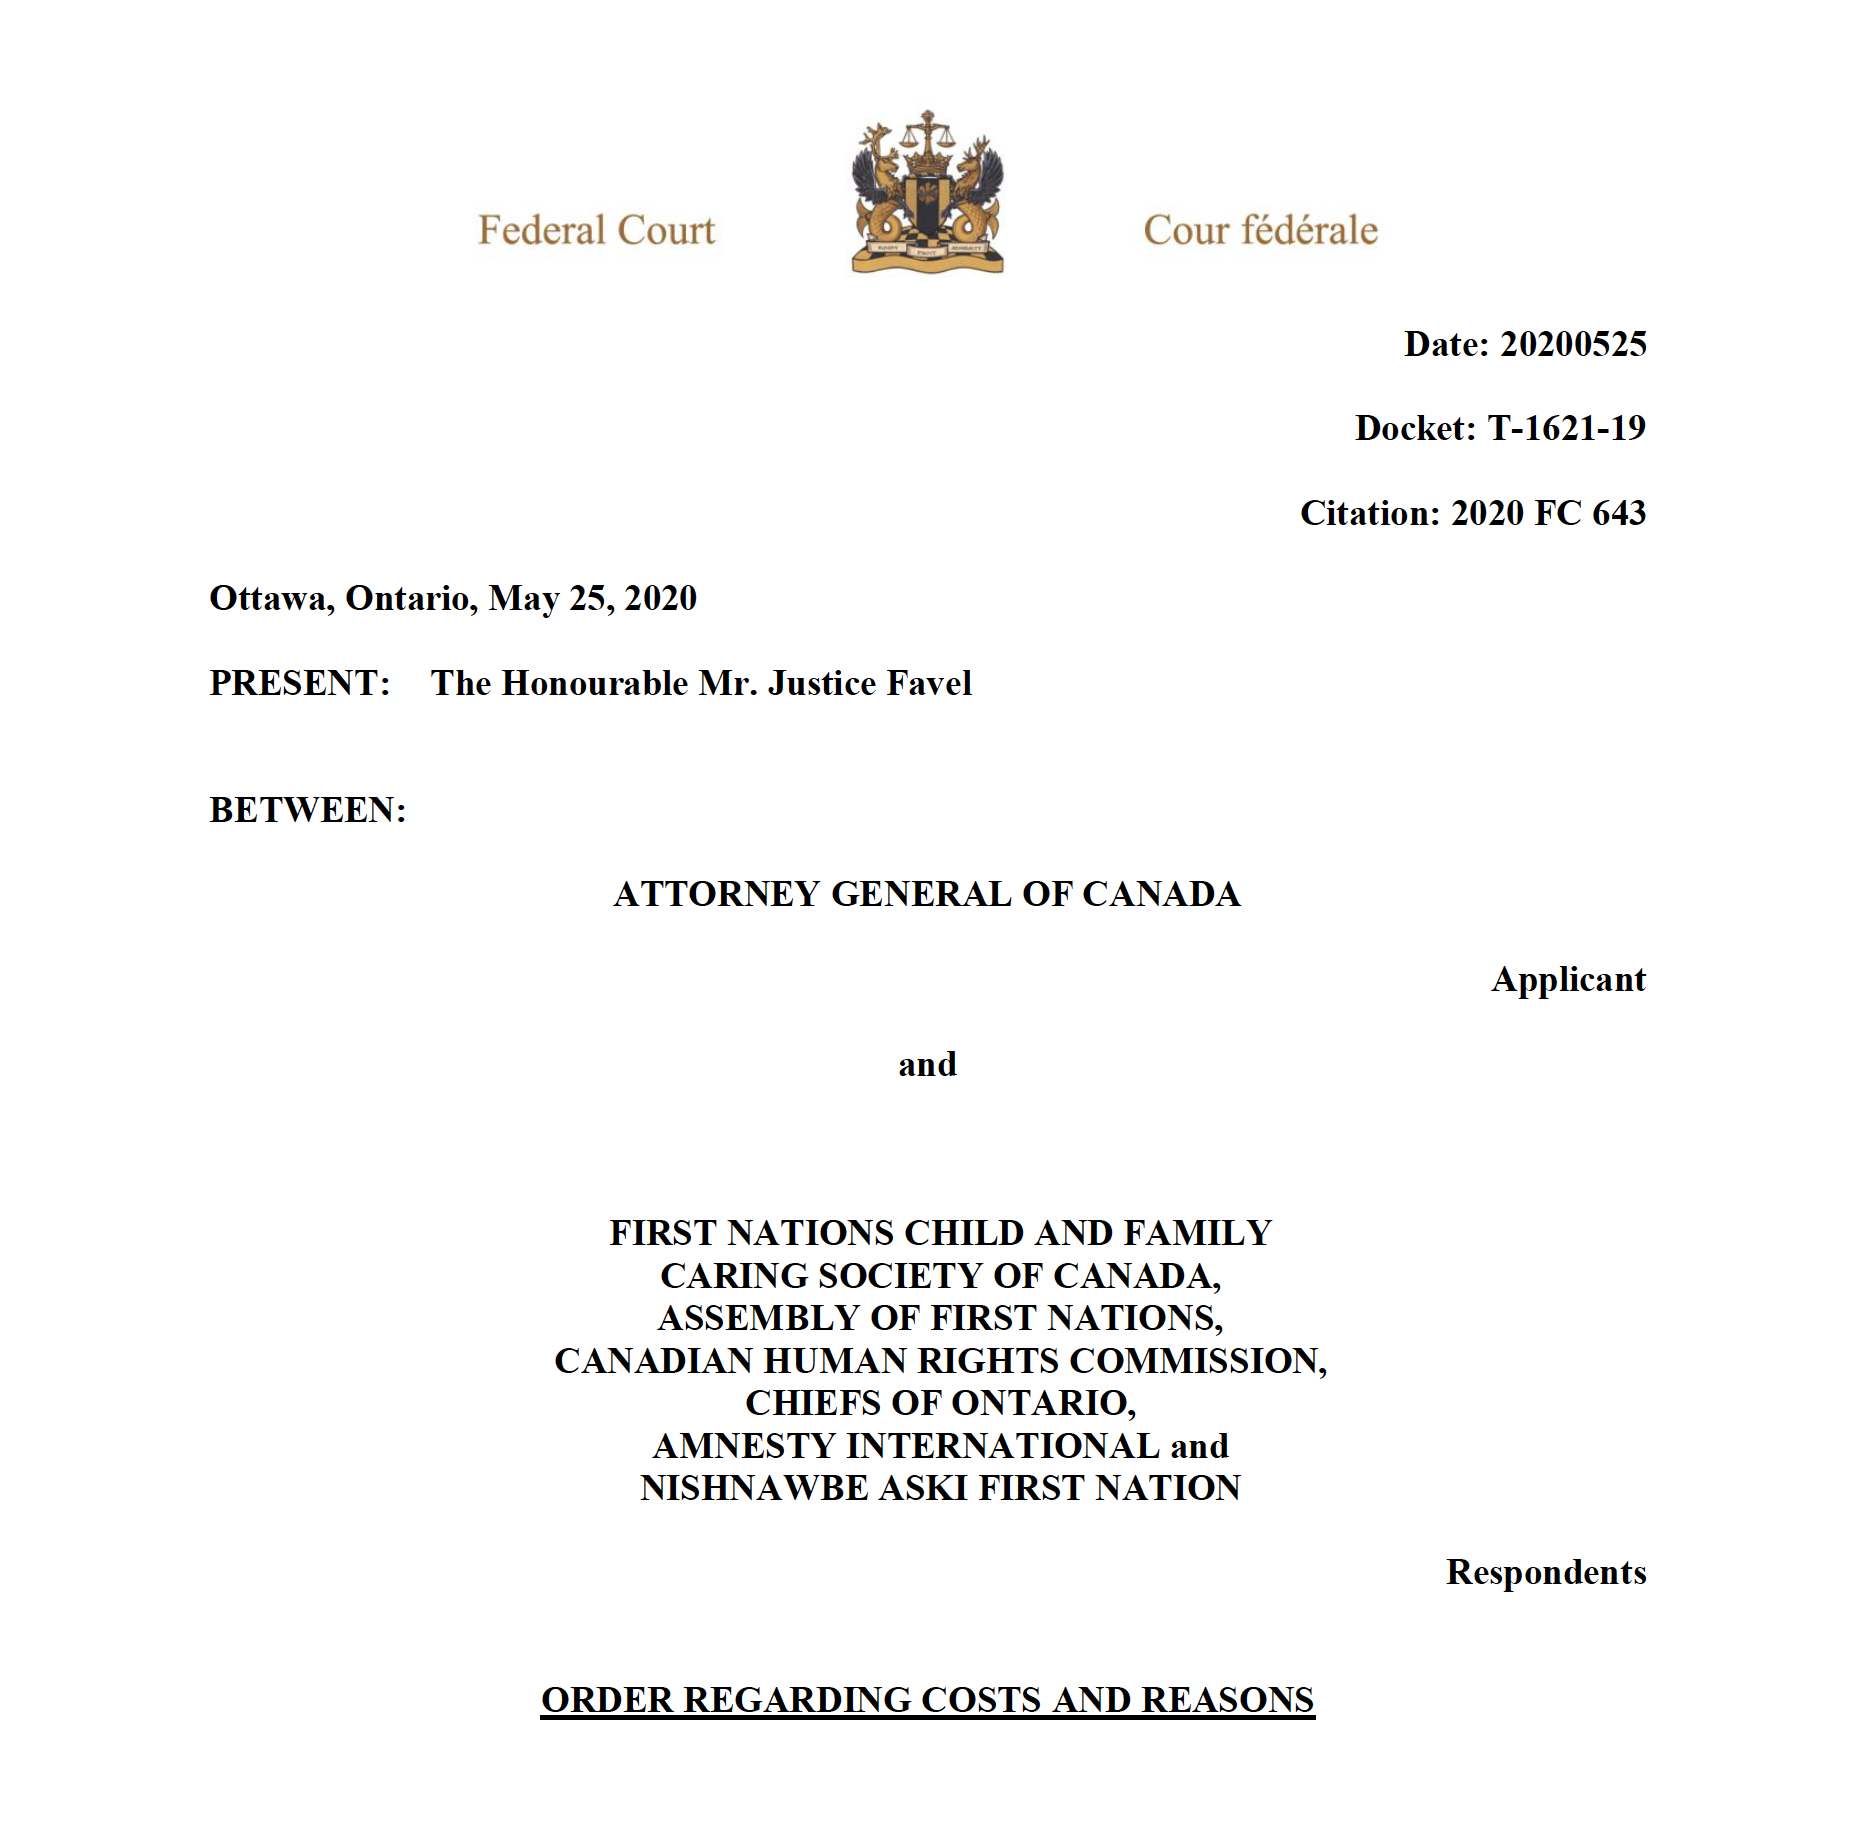 Federal Court Order May 25, 2020